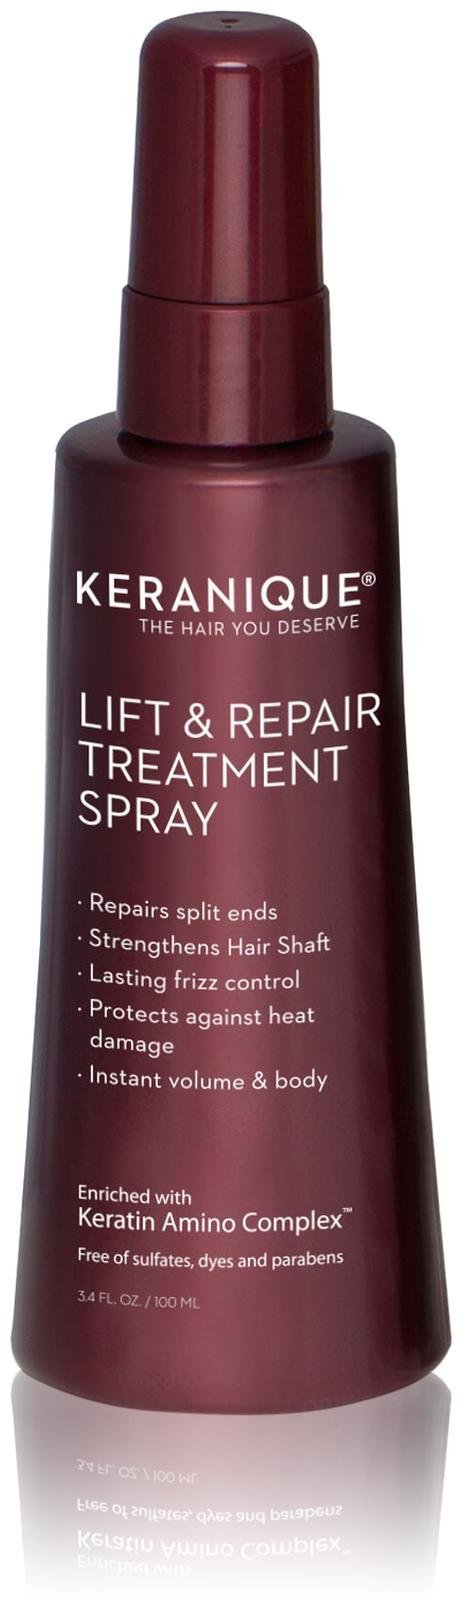 Keranique Lift and Repair Treatment Spray, 3.4 Ounce